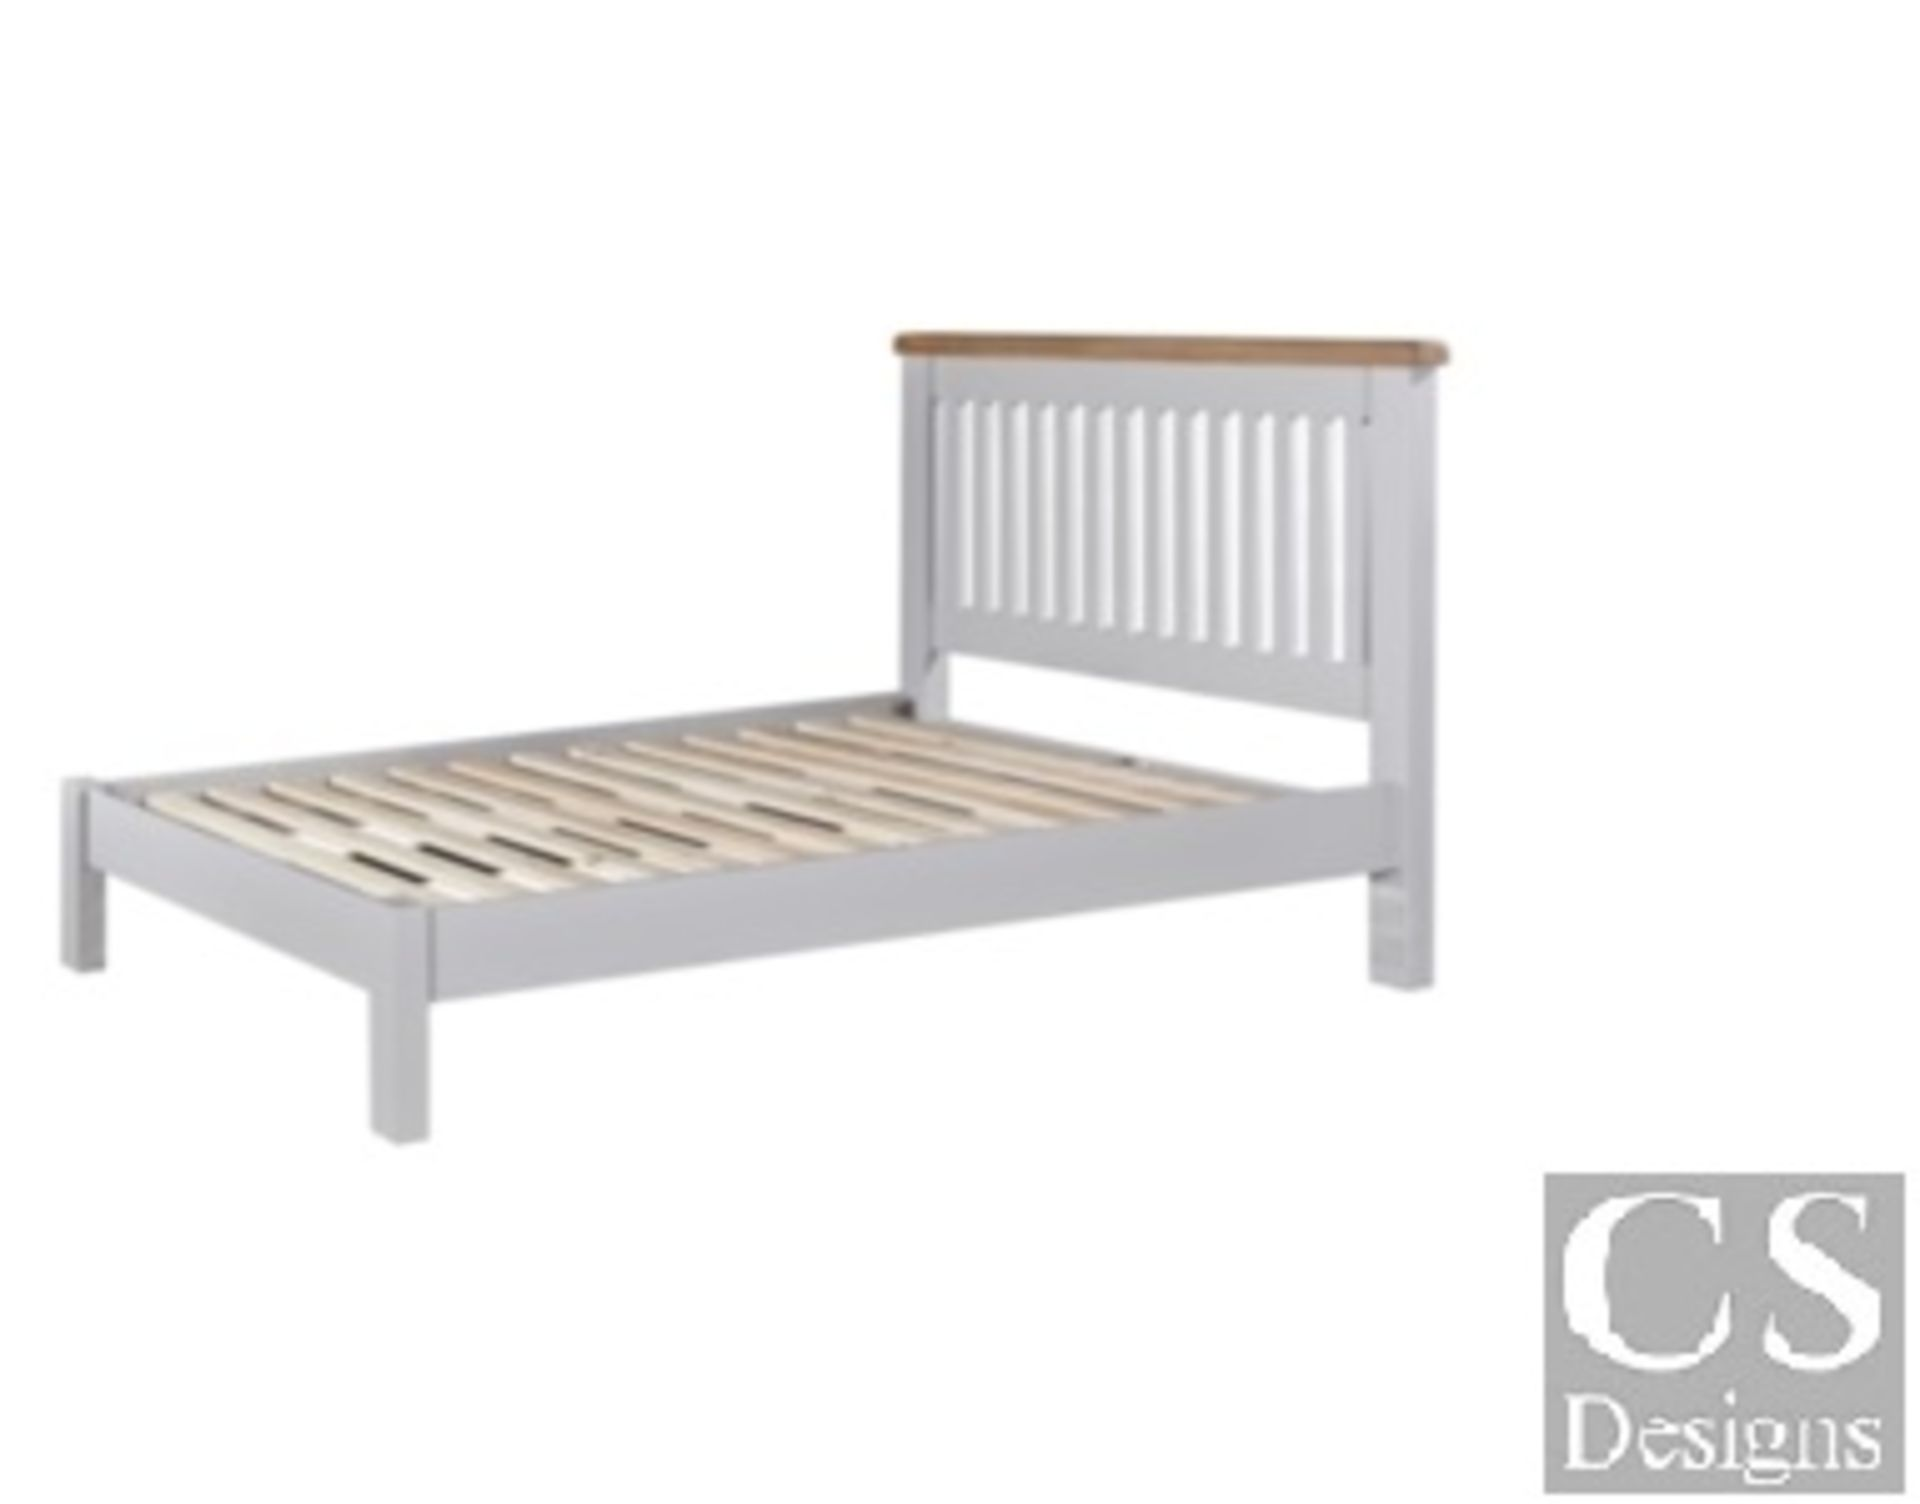 """+ VAT Brand New CS Designs """"Daylesford"""" Double Bed Frame With Natural Oak & Solid Hardwood Painted - Image 3 of 3"""